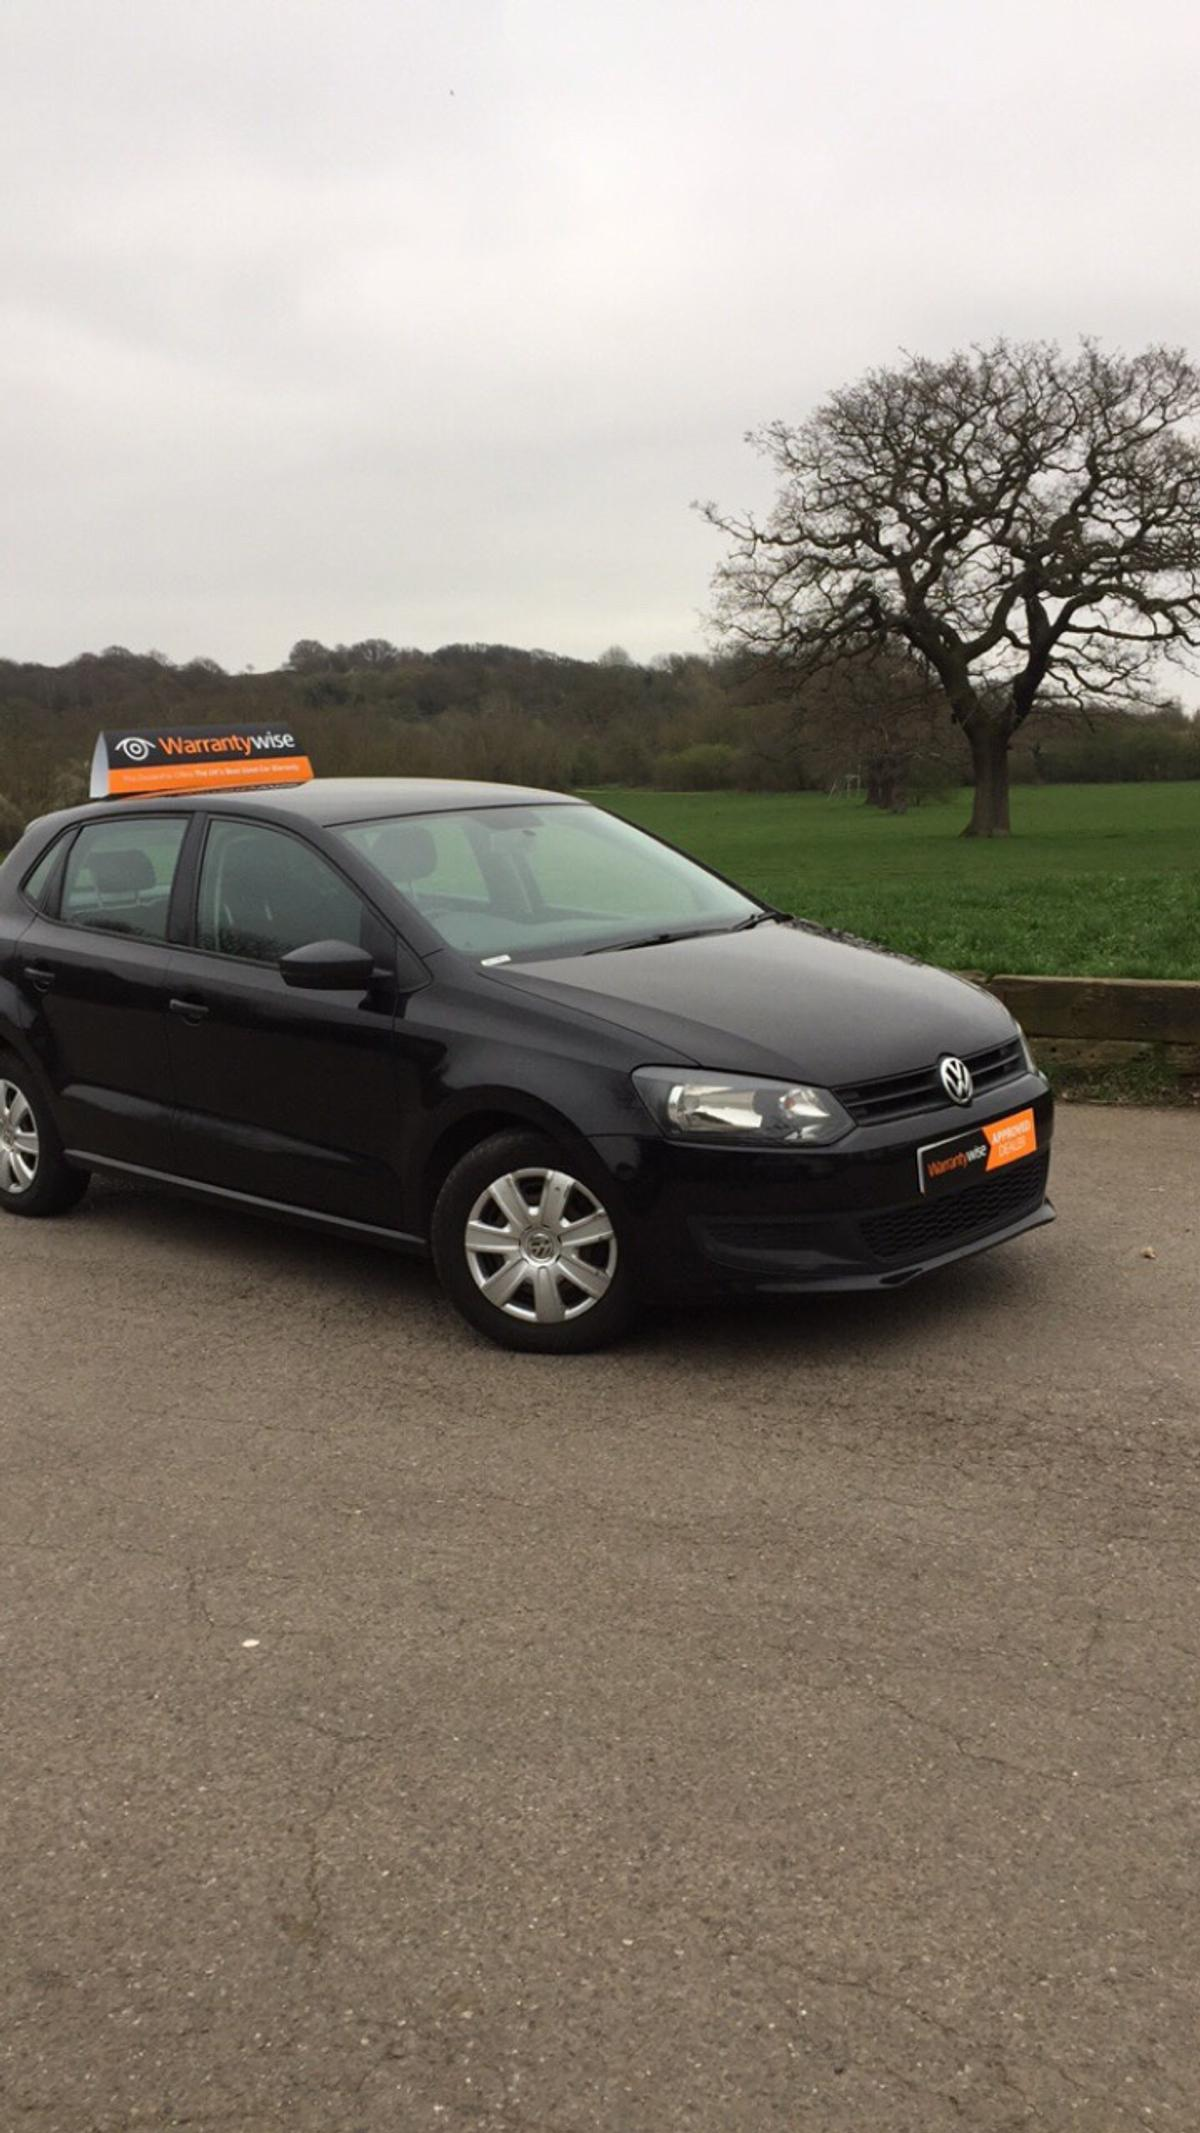 VW Polo 1 2L Petrol in UB6 Greenford for £3,799 00 for sale